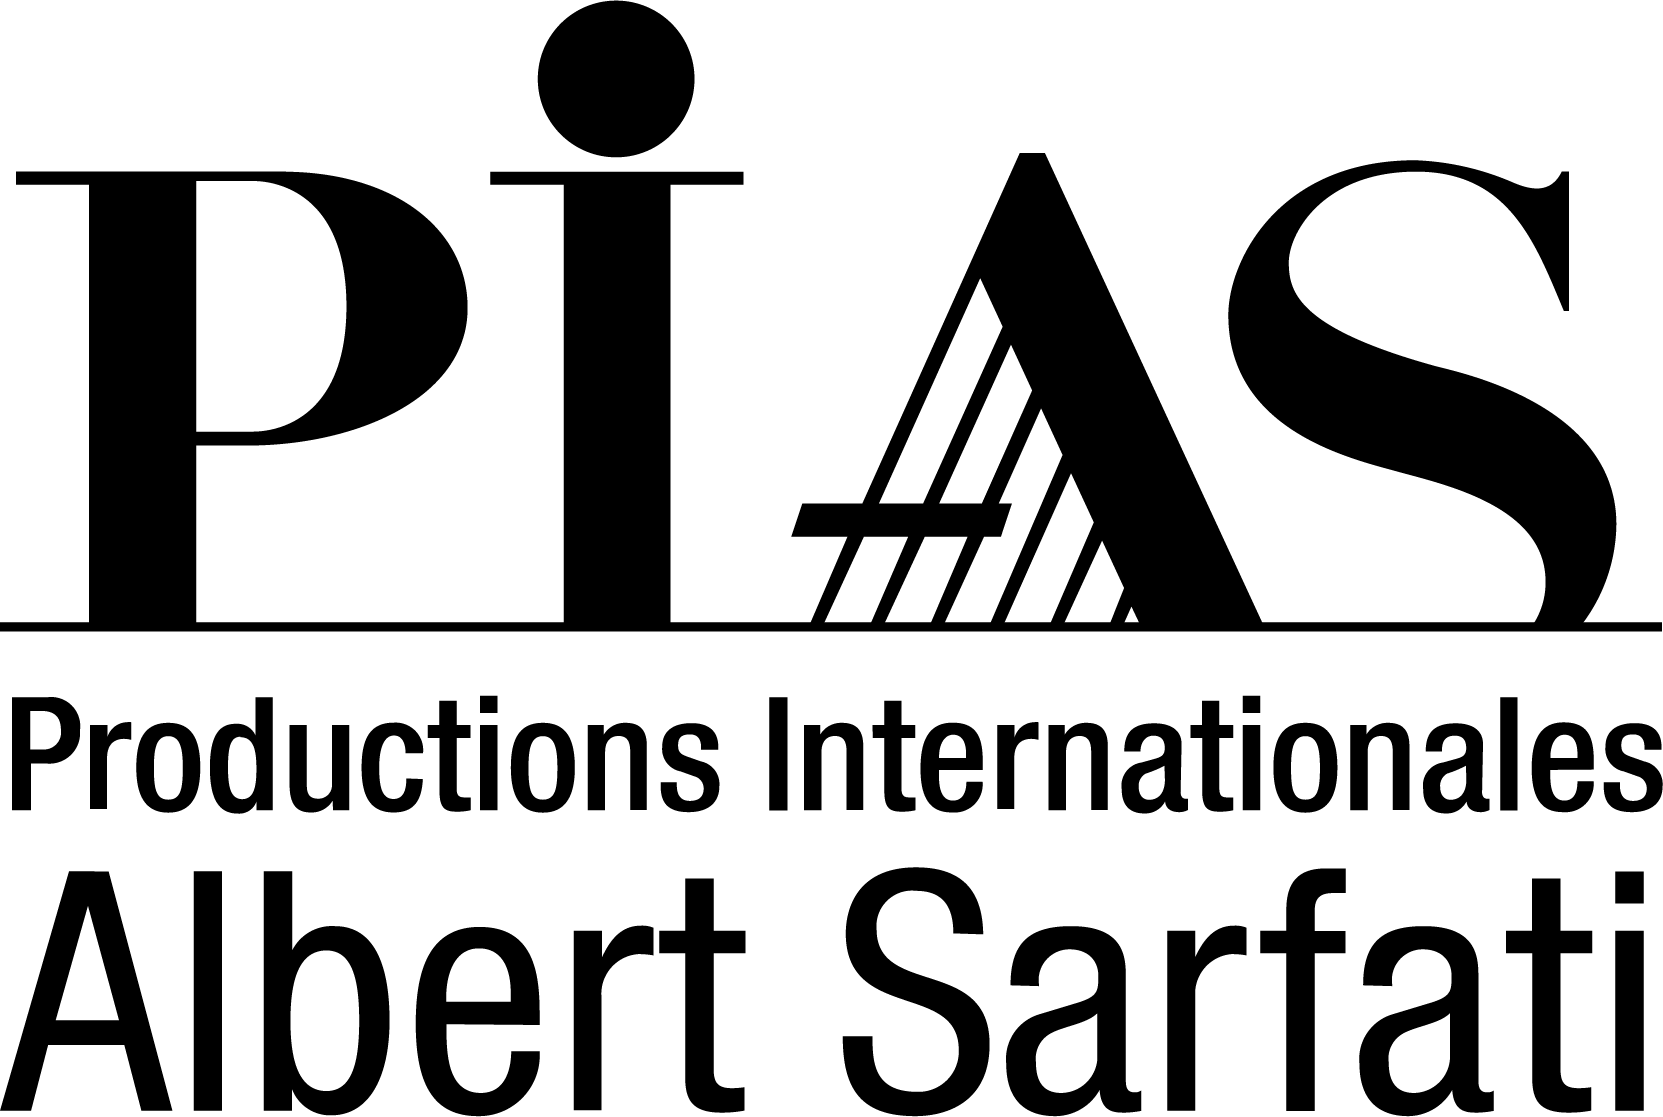 Productions Internationales Albert Sarfati Logo